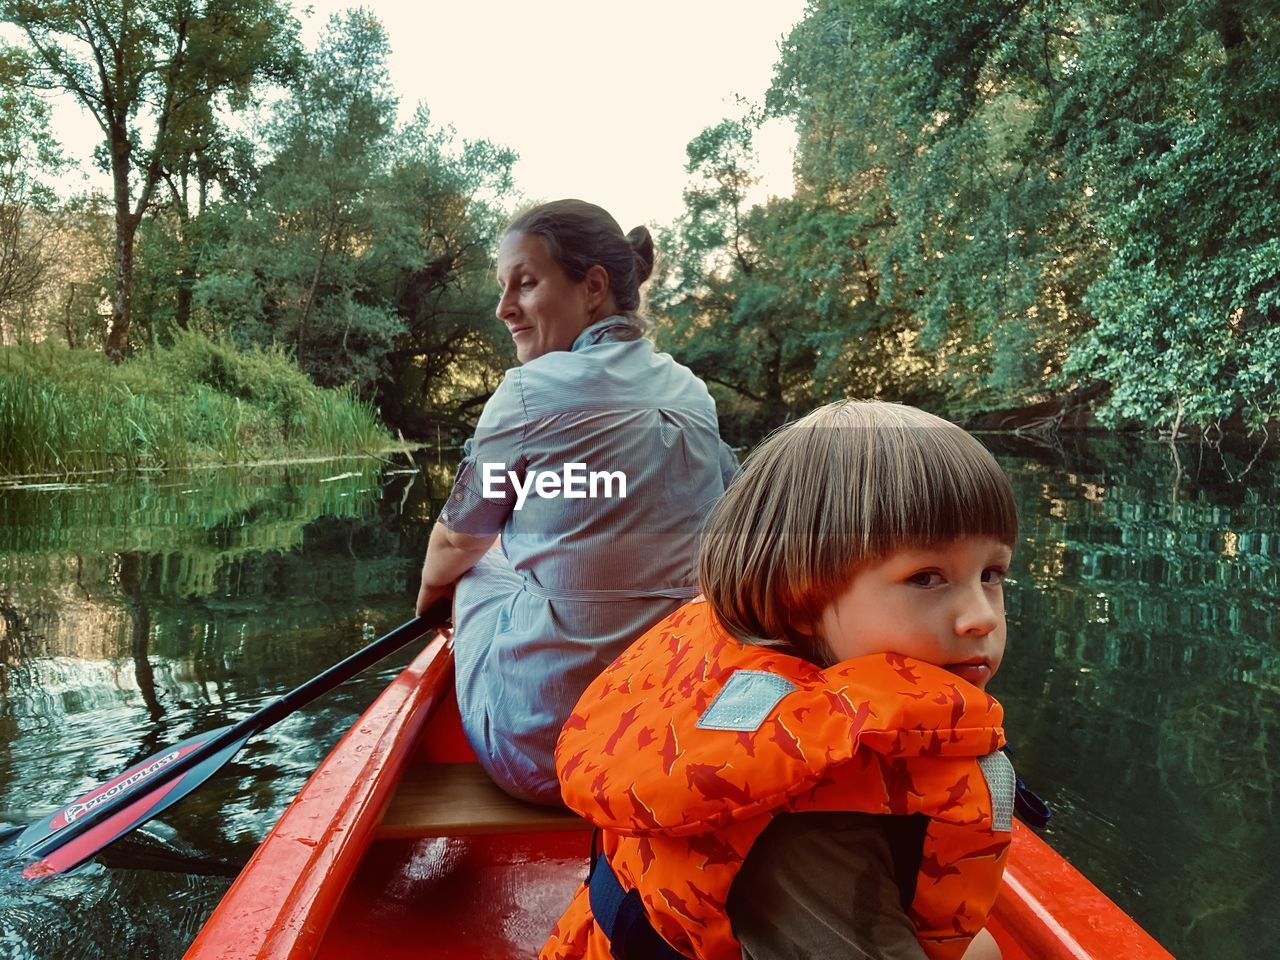 Boy looking at boat against trees